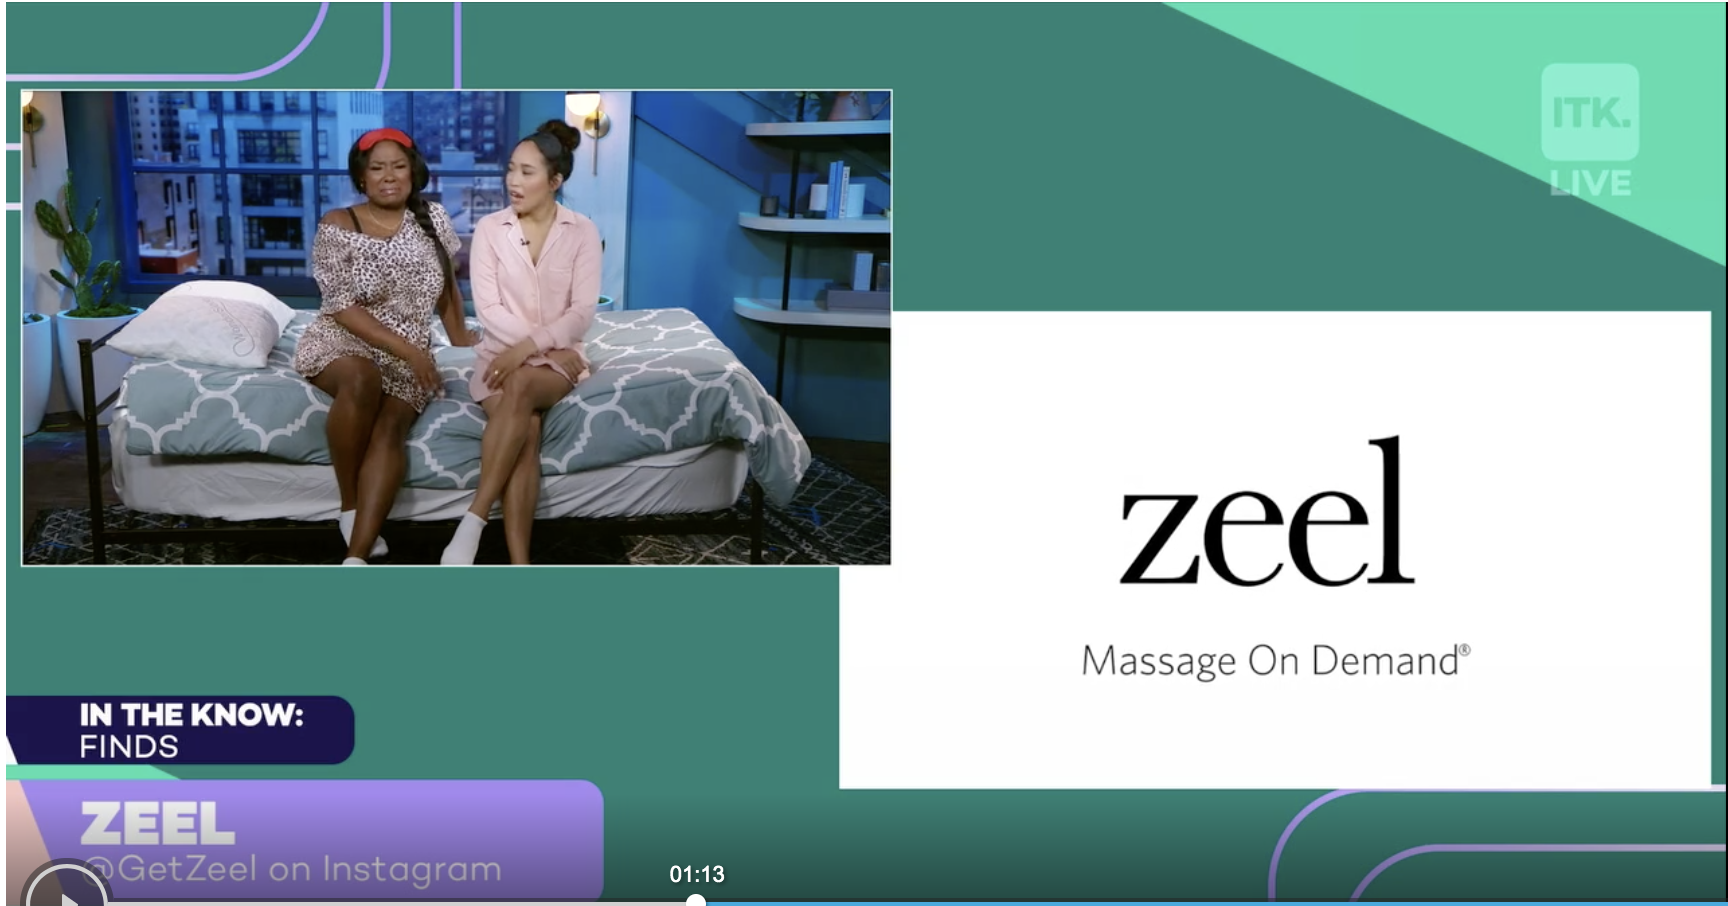 Book an in-home massage from the comfort of your couch with Zeel